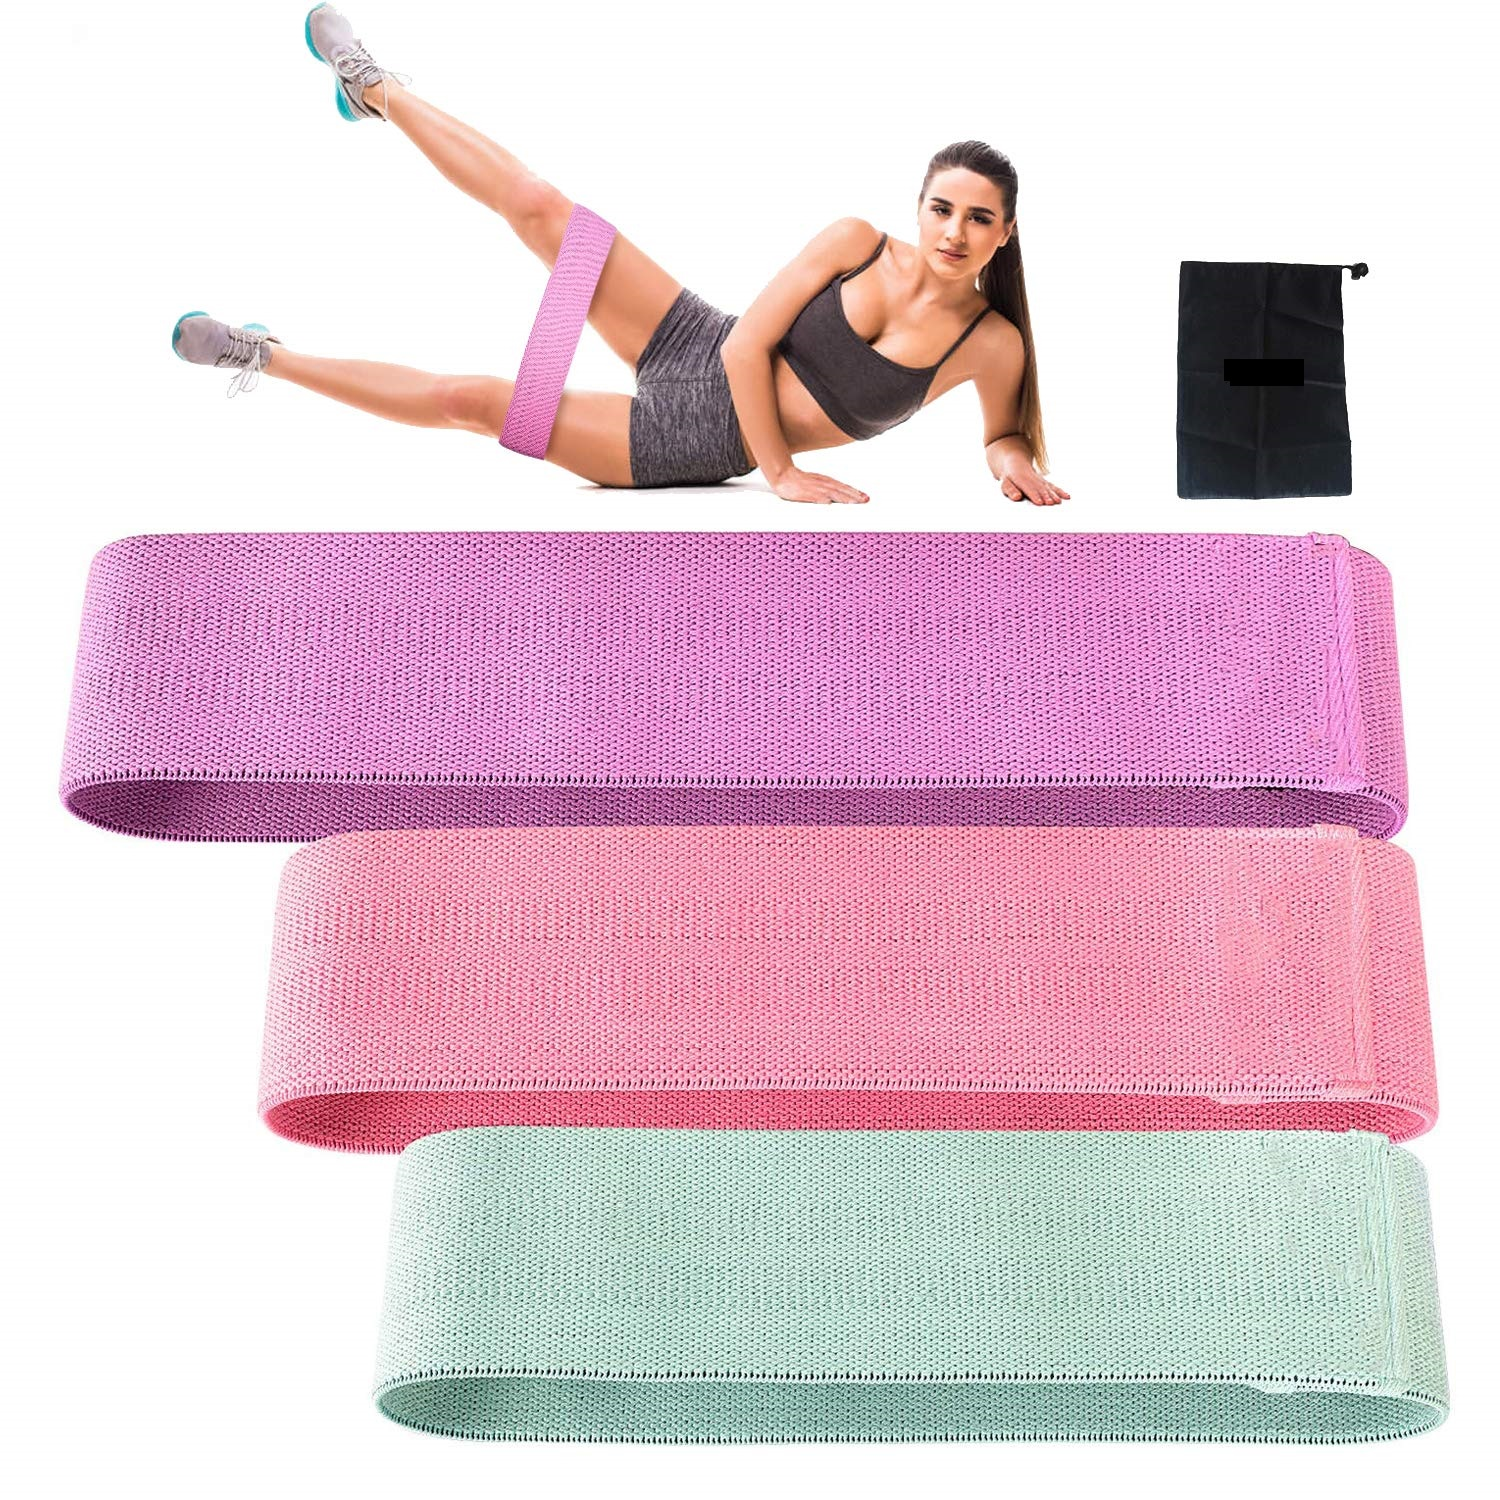 Fabric Resistance Bands set Booty Hip Bands Rolling Circle Bands Featured Image